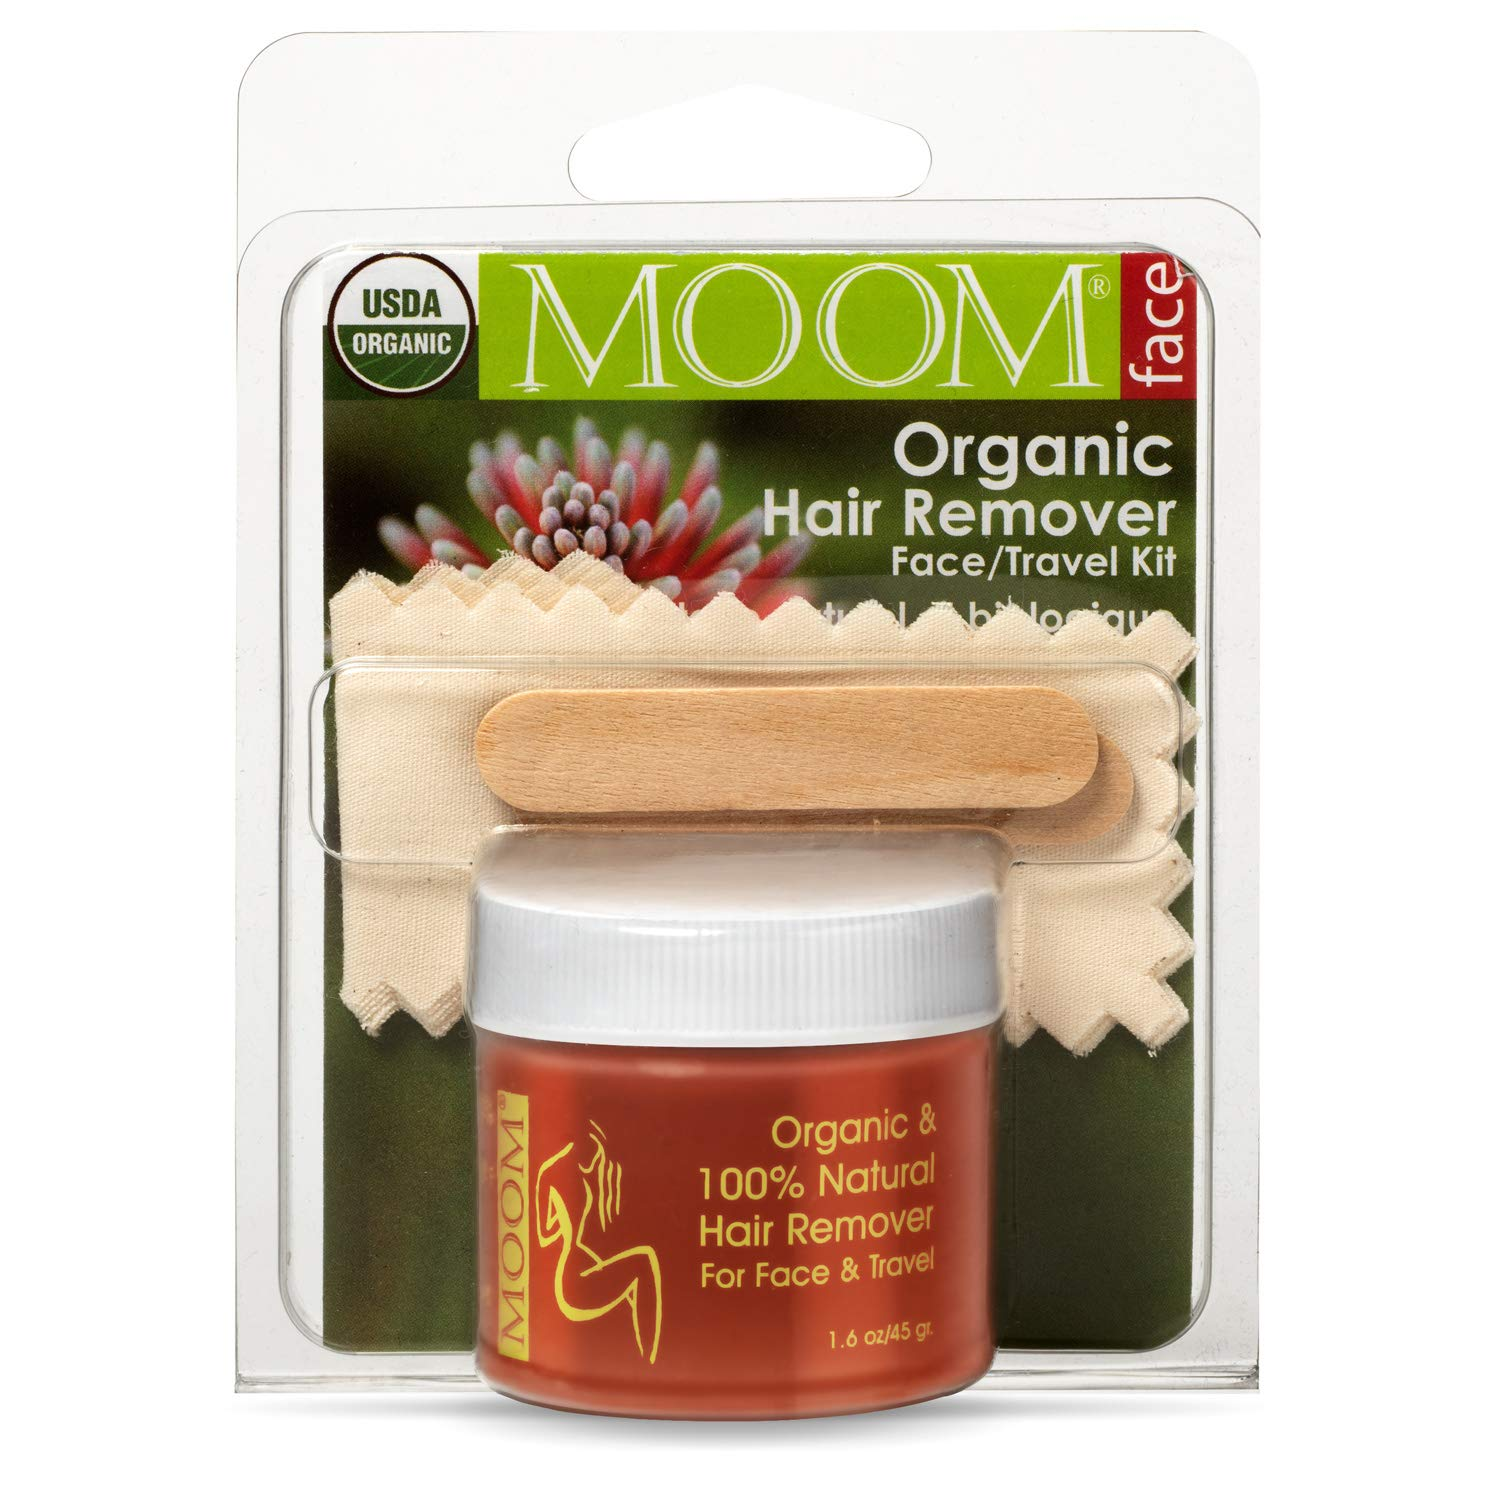 MOOM Organic Travel Wax Kit with Aloe, Tea Tree Oil & Chamomile for Face - Natural Sugar Waxing Glaze with 6 Facial Fabric Strips & 2 Small Wooden Applicator Sticks 1.6 oz. - Facial Wax Kit - 1 Pack